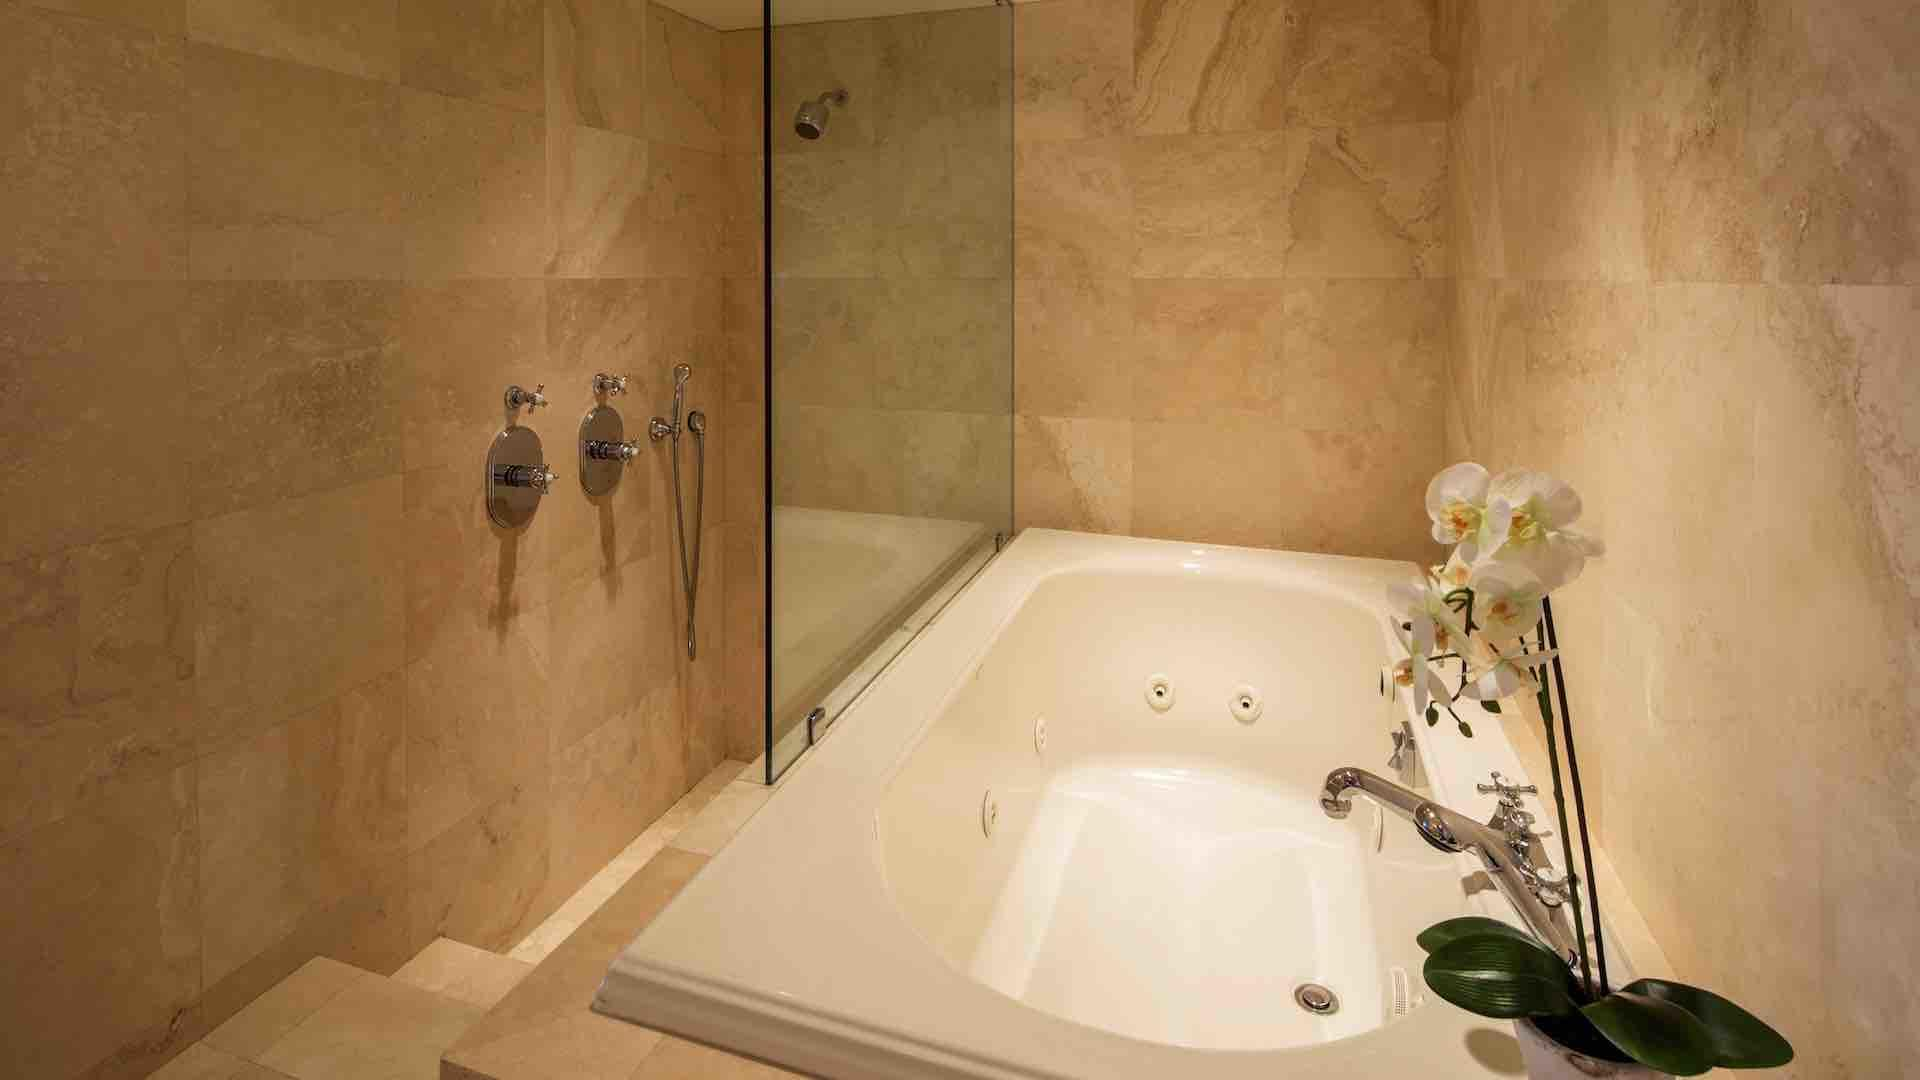 There is a large jacuzzi tub and walk-in shower located in the master bathroom..